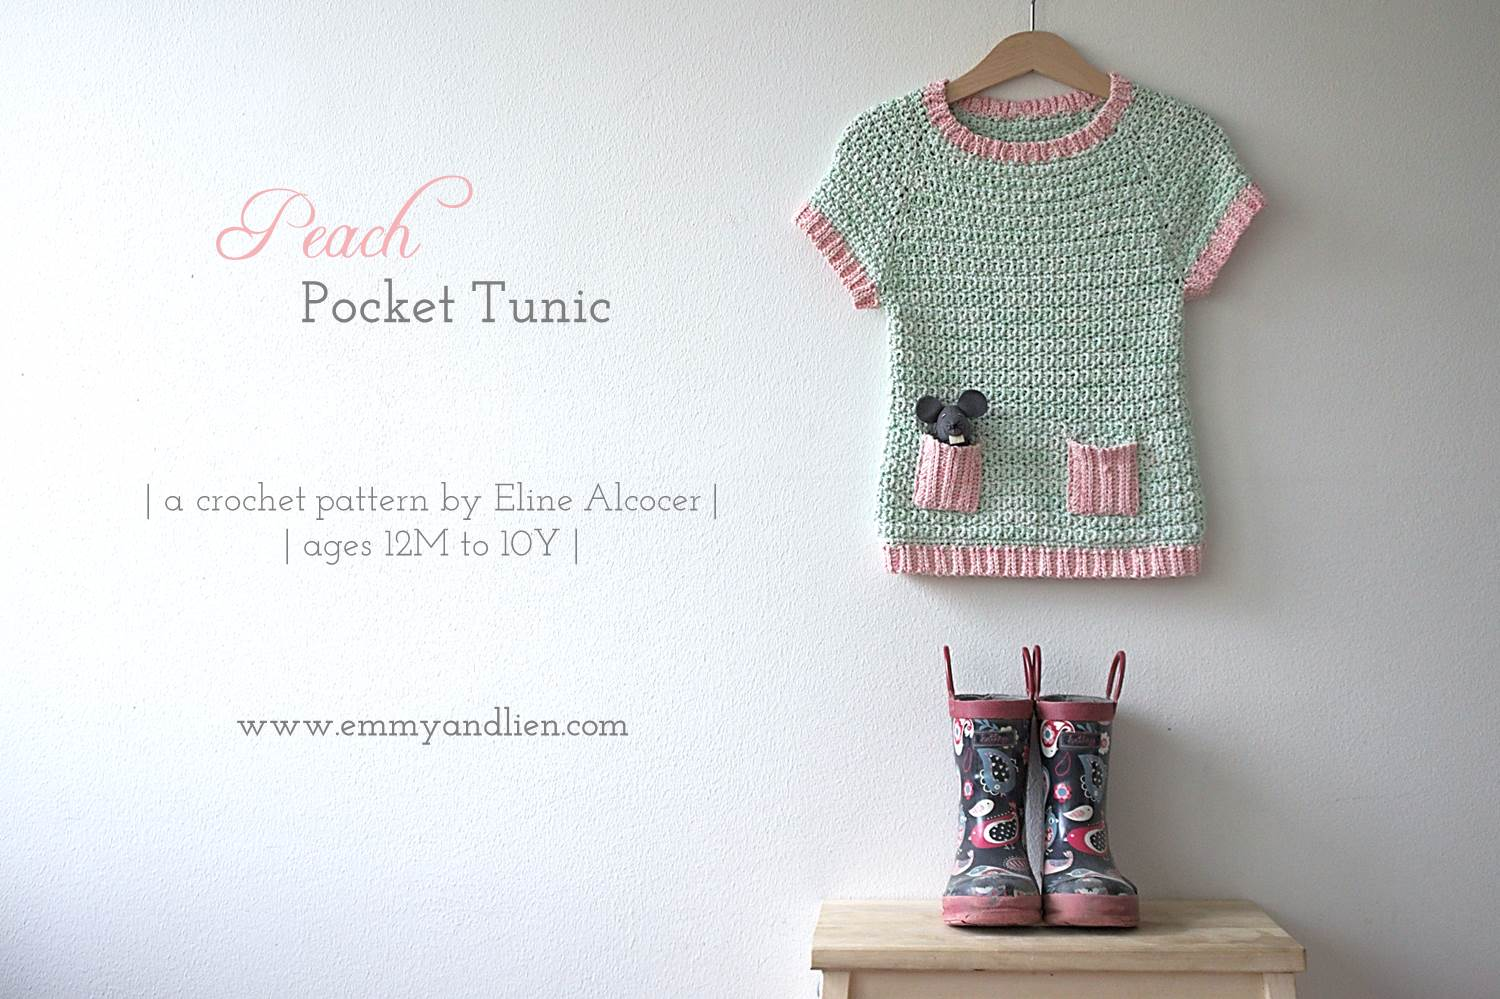 Peach Pocket Tunic crochet pattern